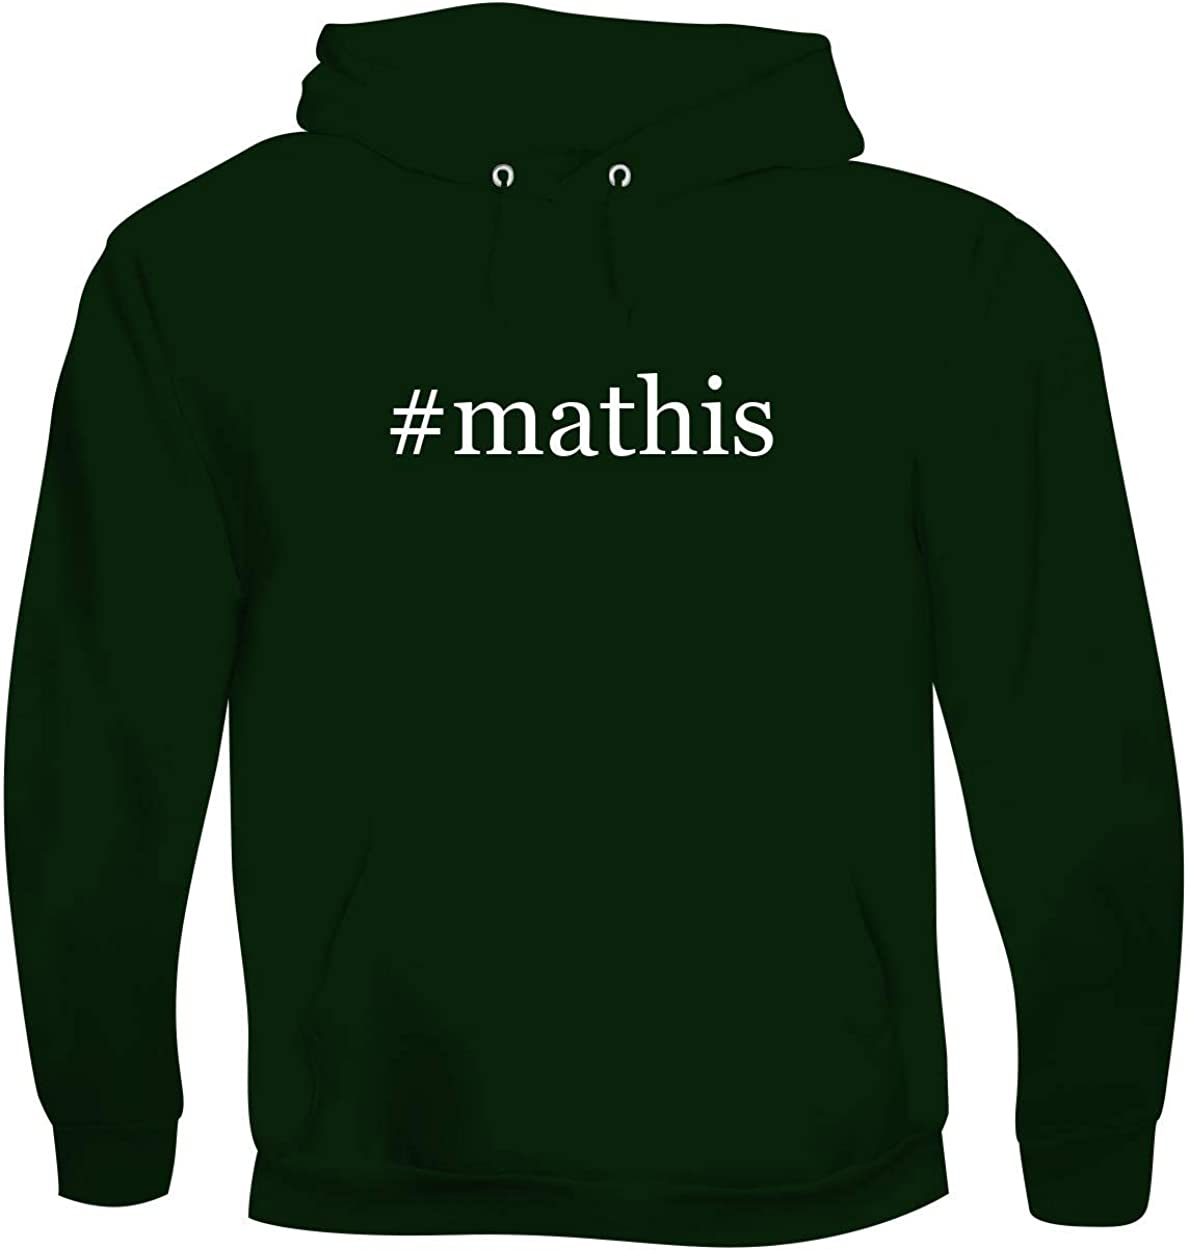 #Mathis - Men'S Hashtag Soft & Comfortable Hoodie Sweatshirt Pullover